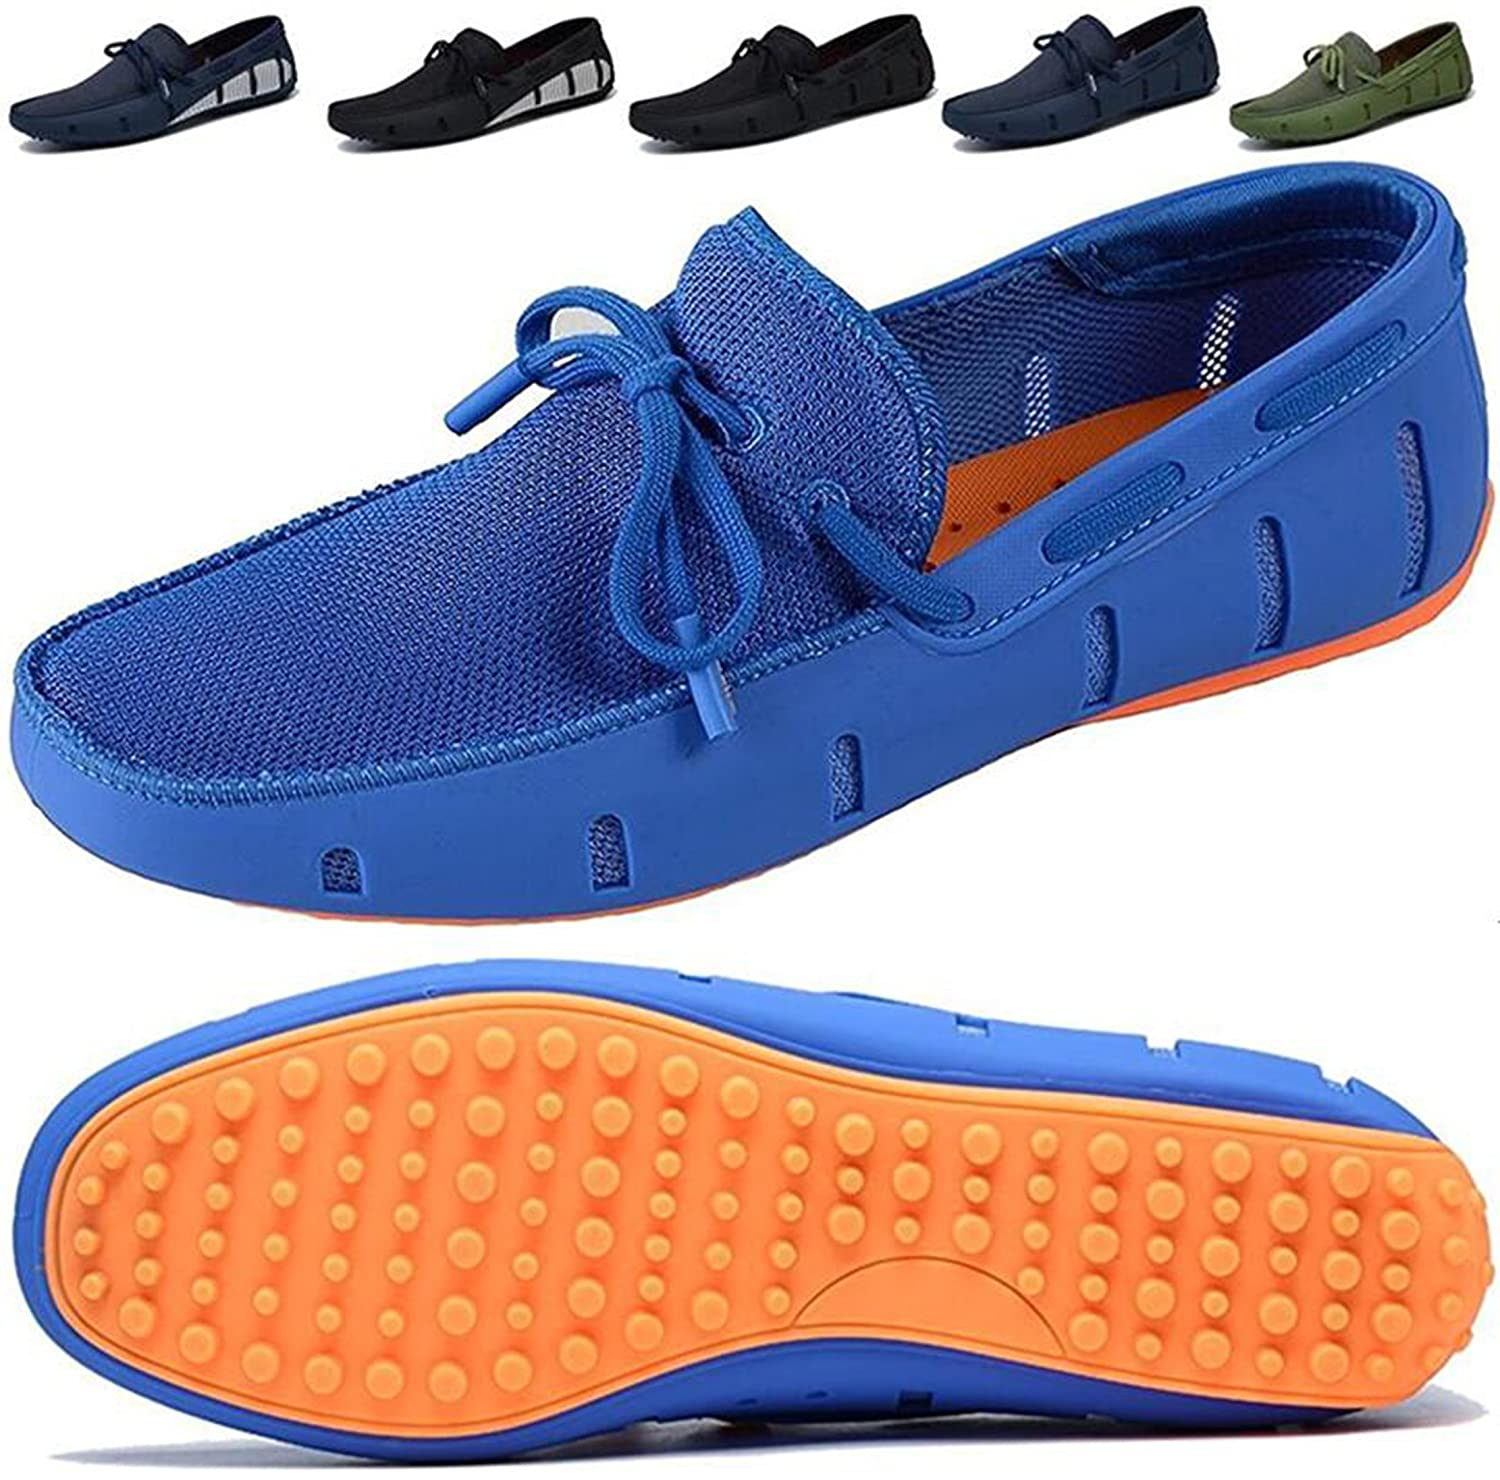 Go Tour Men's Driving Loafer Fashion Slipper Casual Slip On Loafers Boat Shoes for Beach, Pool,City and All Around Comfort 6.5 D(M) US|Blue-orange